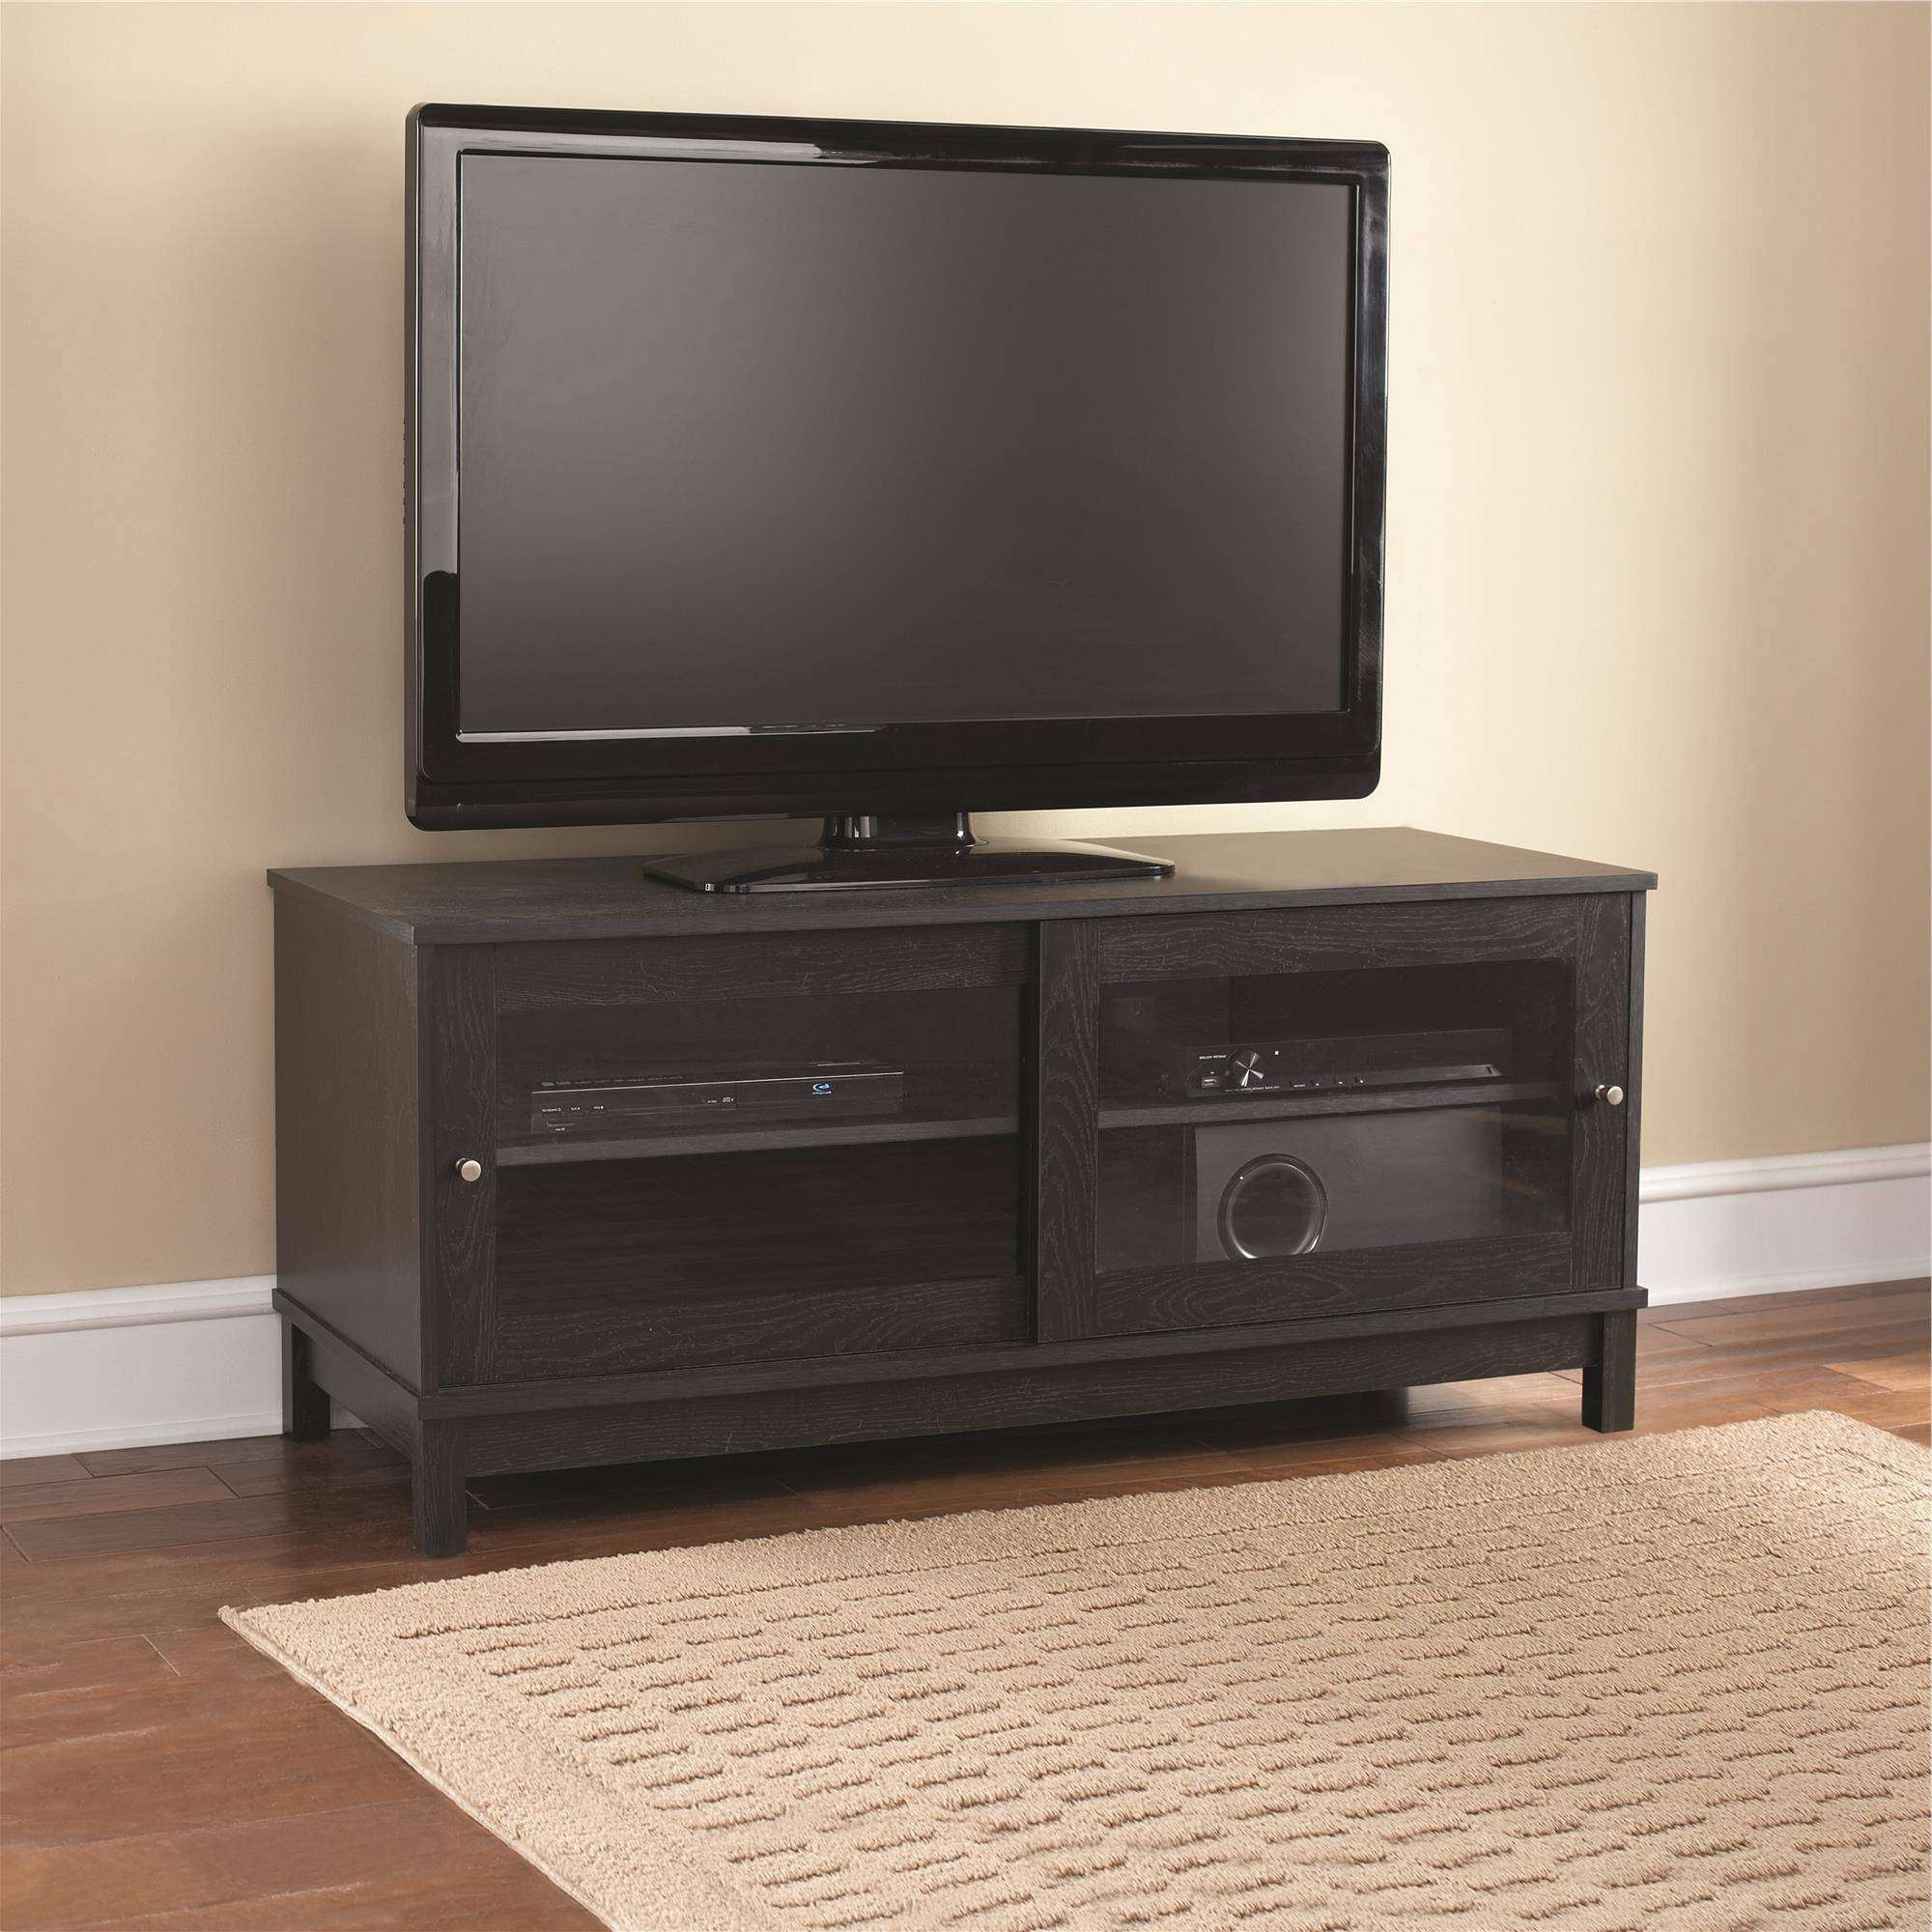 "Mainstays 55"" Tv Stand With Sliding Glass Doors, Black Ebony Ash Intended For Black Tv Stands With Glass Doors (View 1 of 15)"